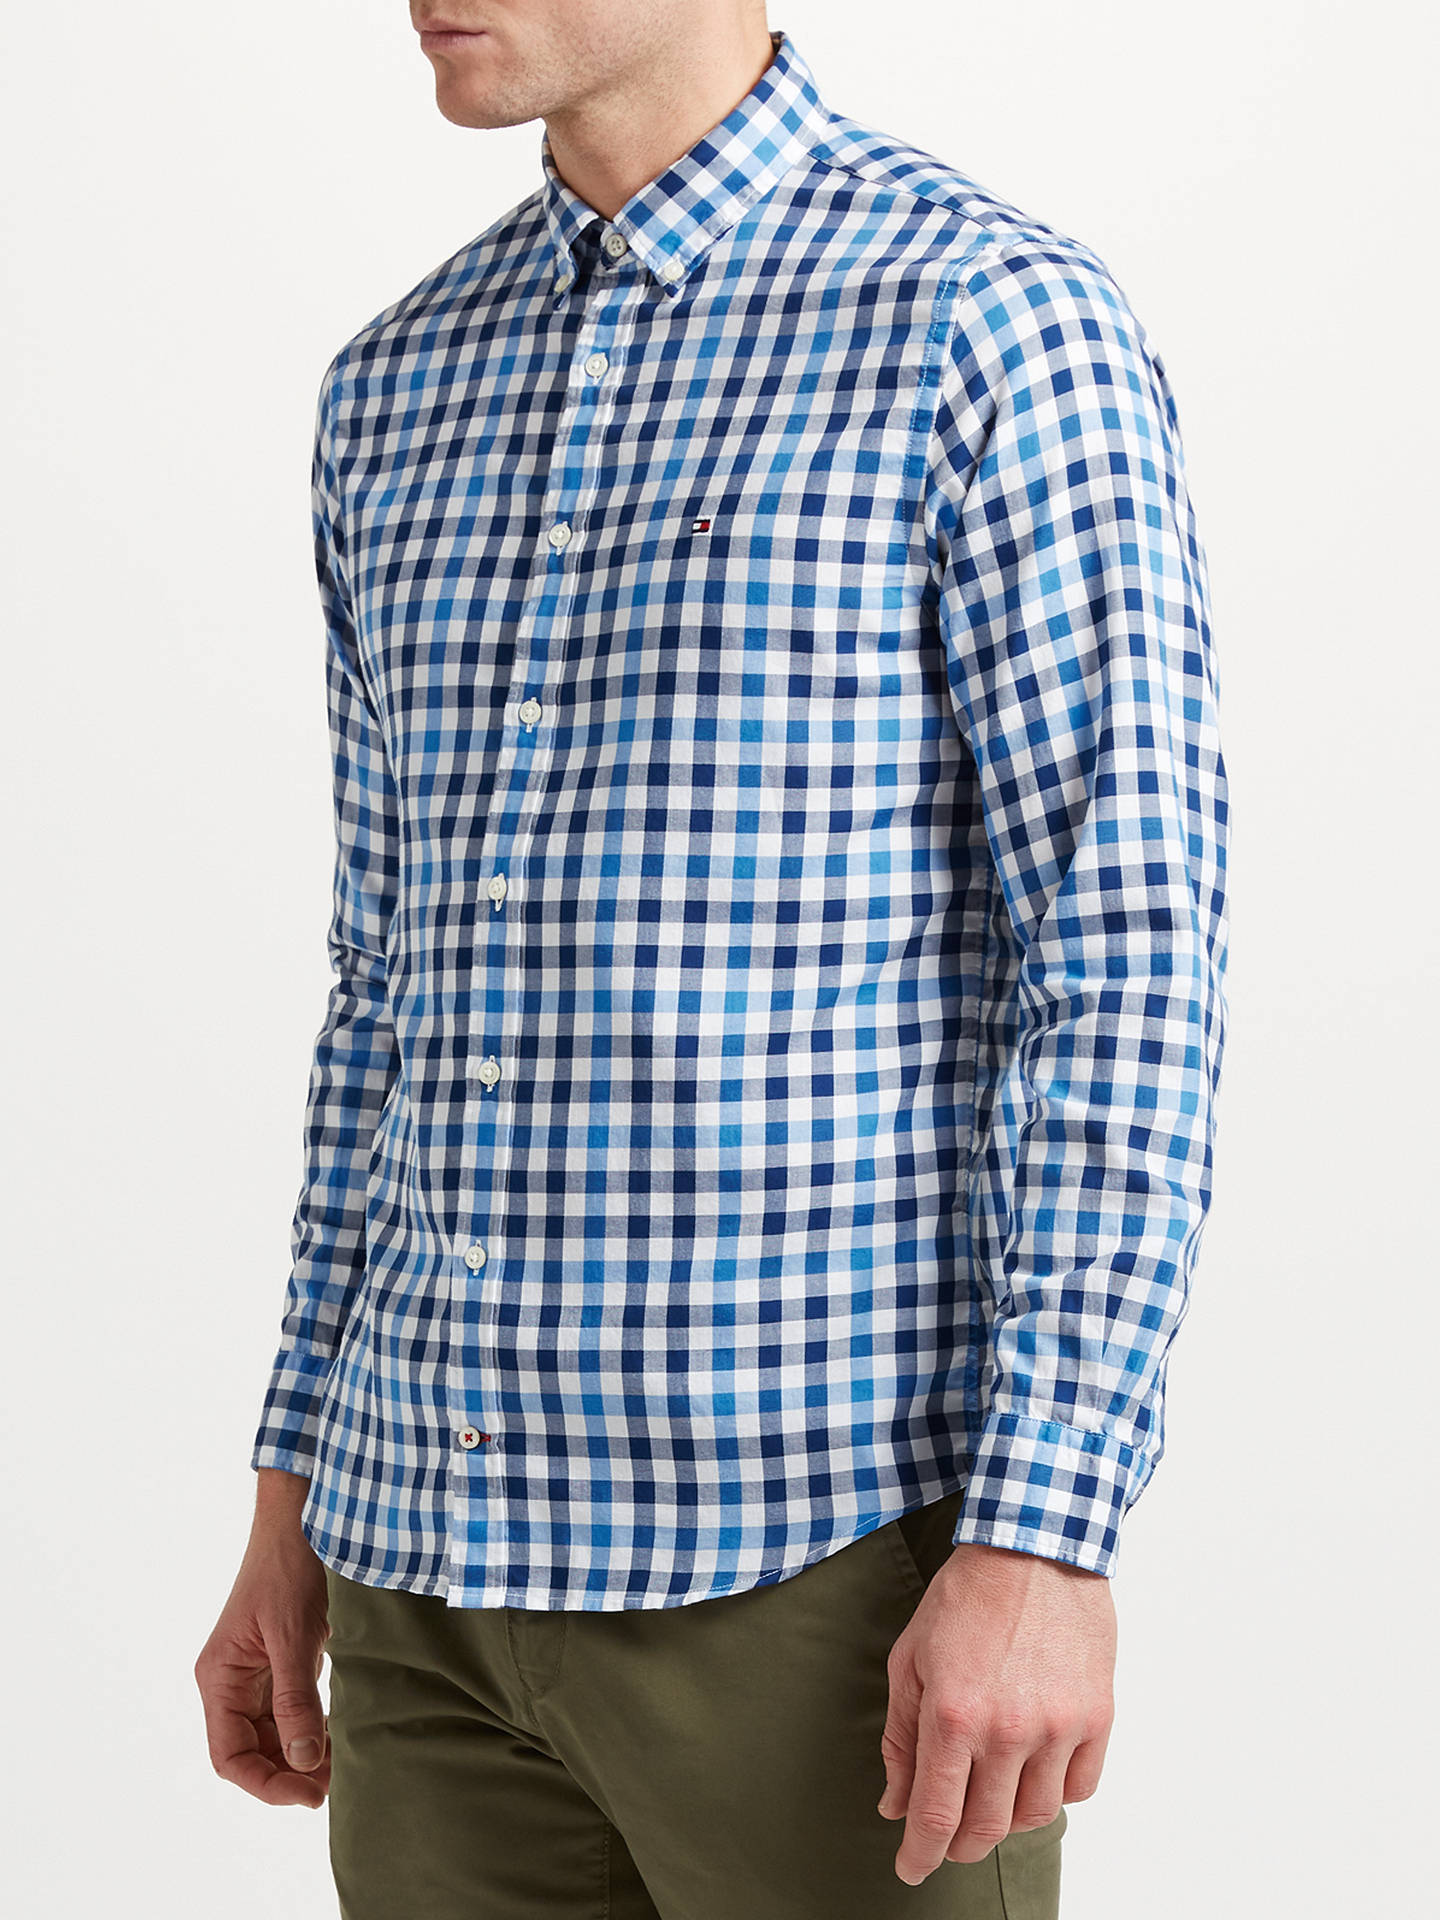 380b4e1ea Buy Tommy Hilfiger Multi Gingham Check Shirt, Sky Captain, S Online at  johnlewis.